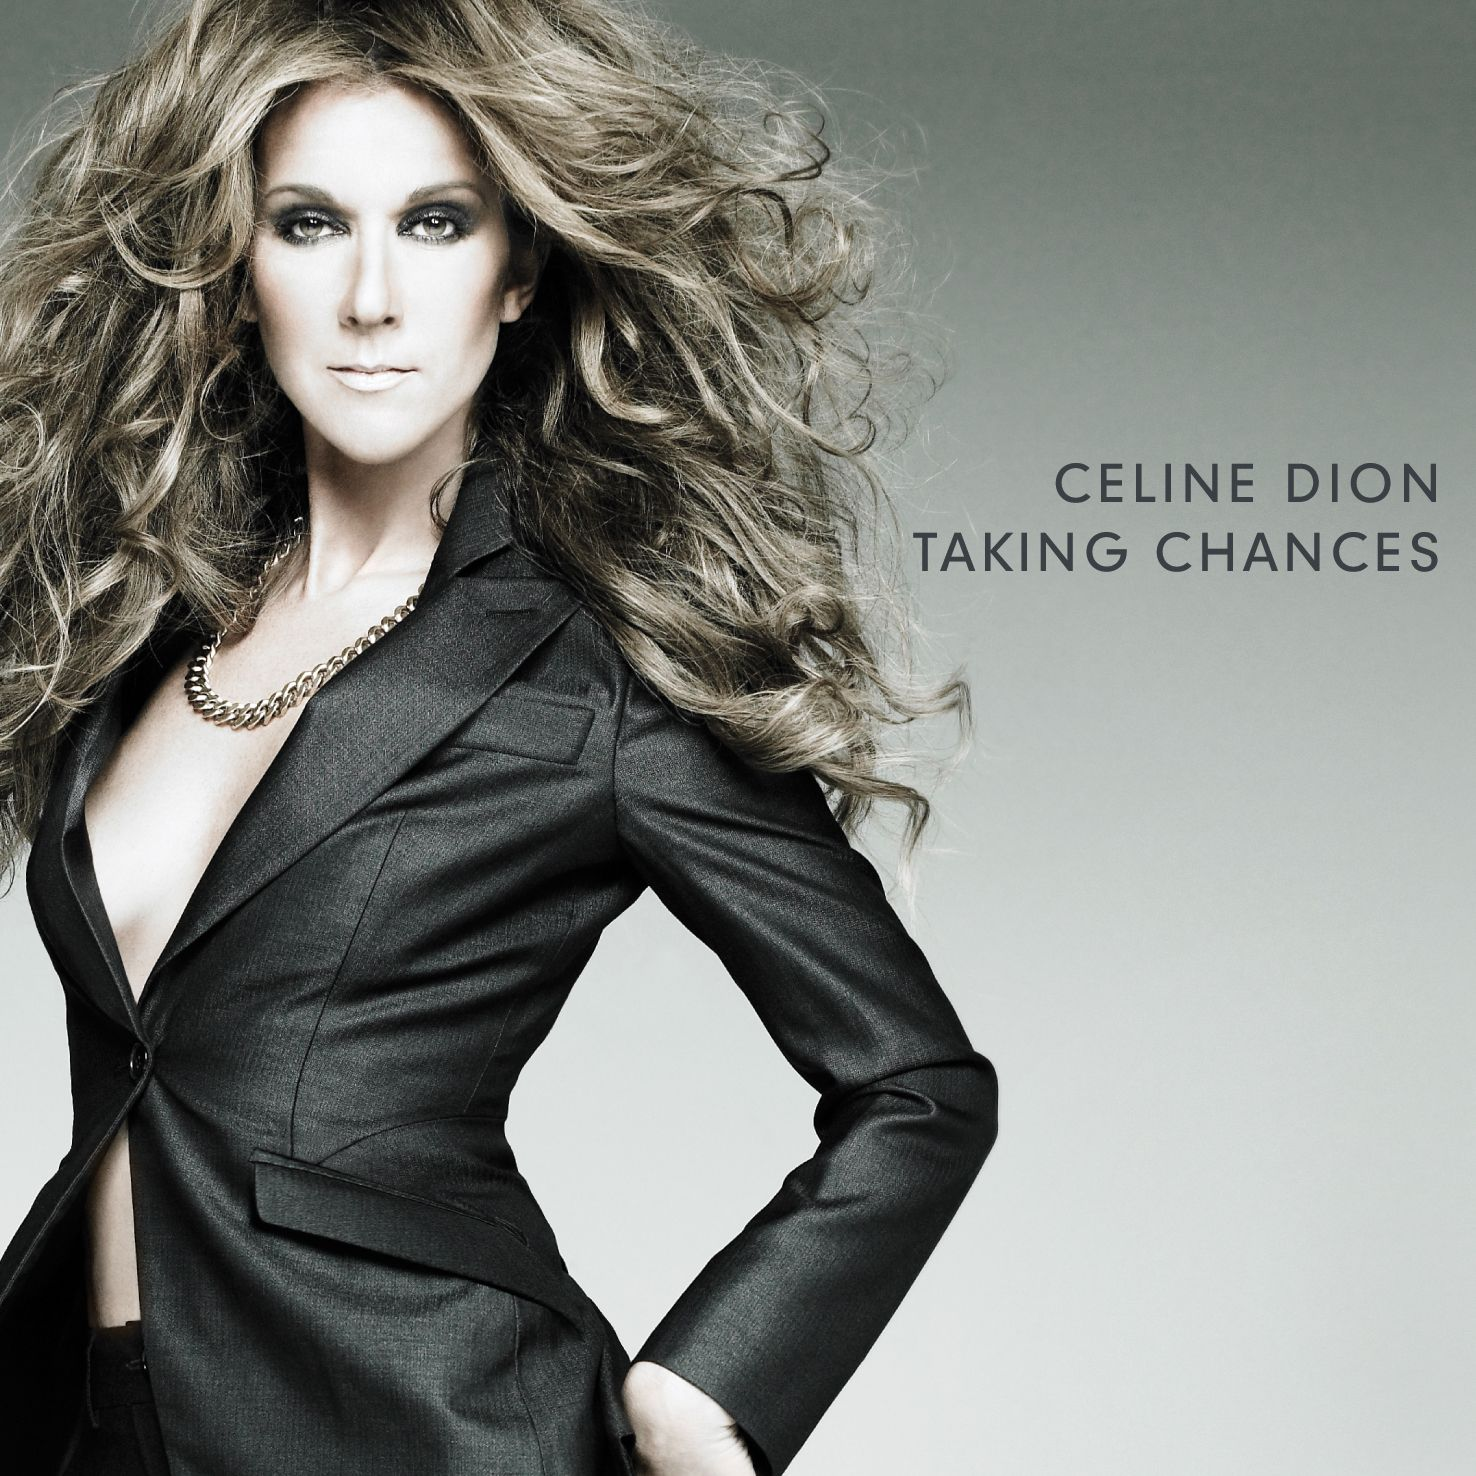 Celine Dion - Taking Chances album cover